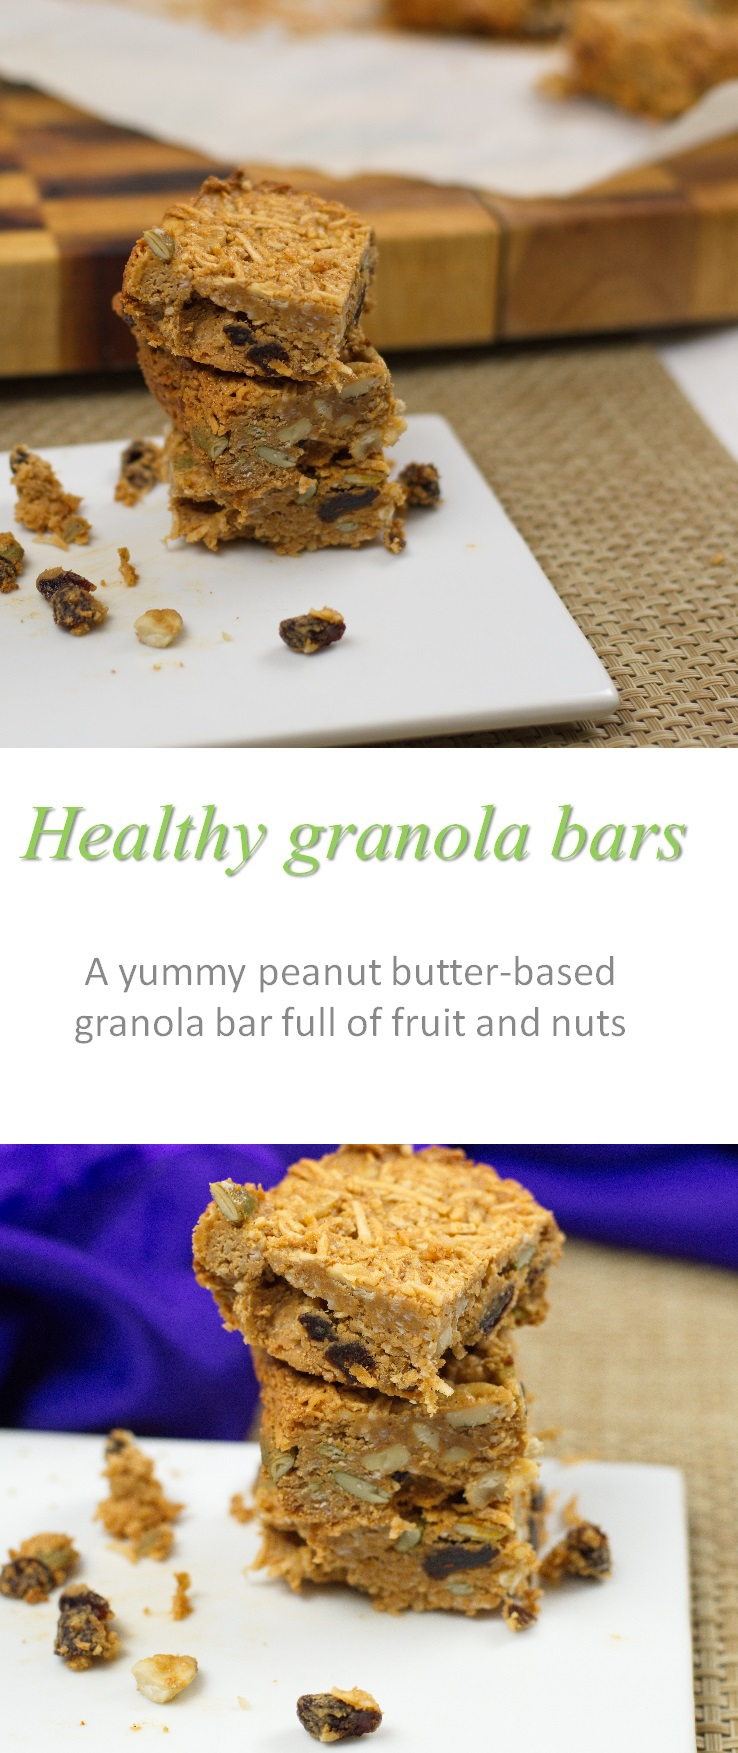 This healthy granola bar recipe uses all natural ingredients. The coconut, honey and dried fruit are for the sweetness and the nuts are for the crunchiness. #granolabar